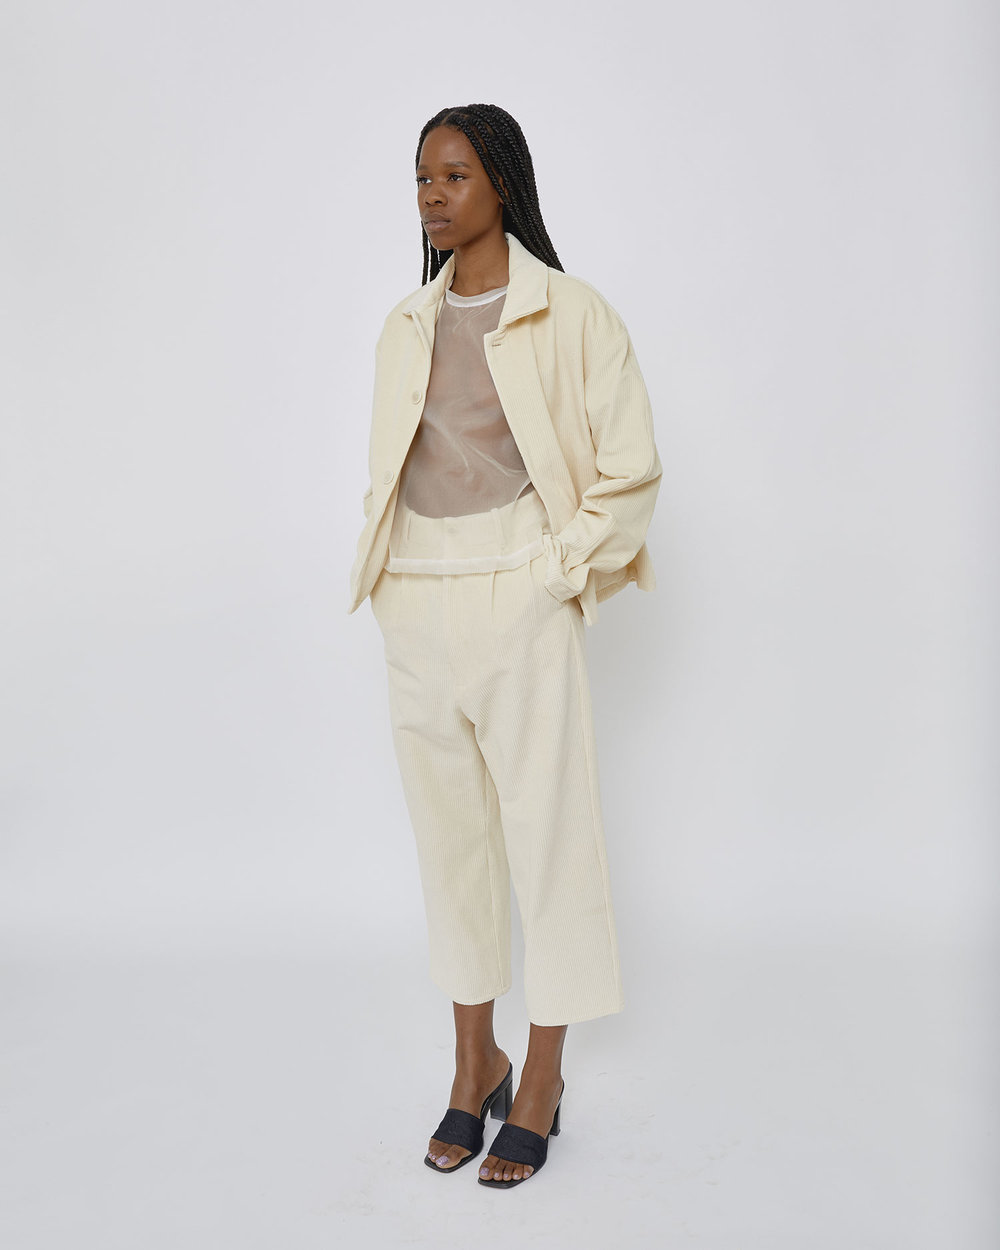 Kemi wears corduroy jacket and pant, available now at Edifice in Tokyo.